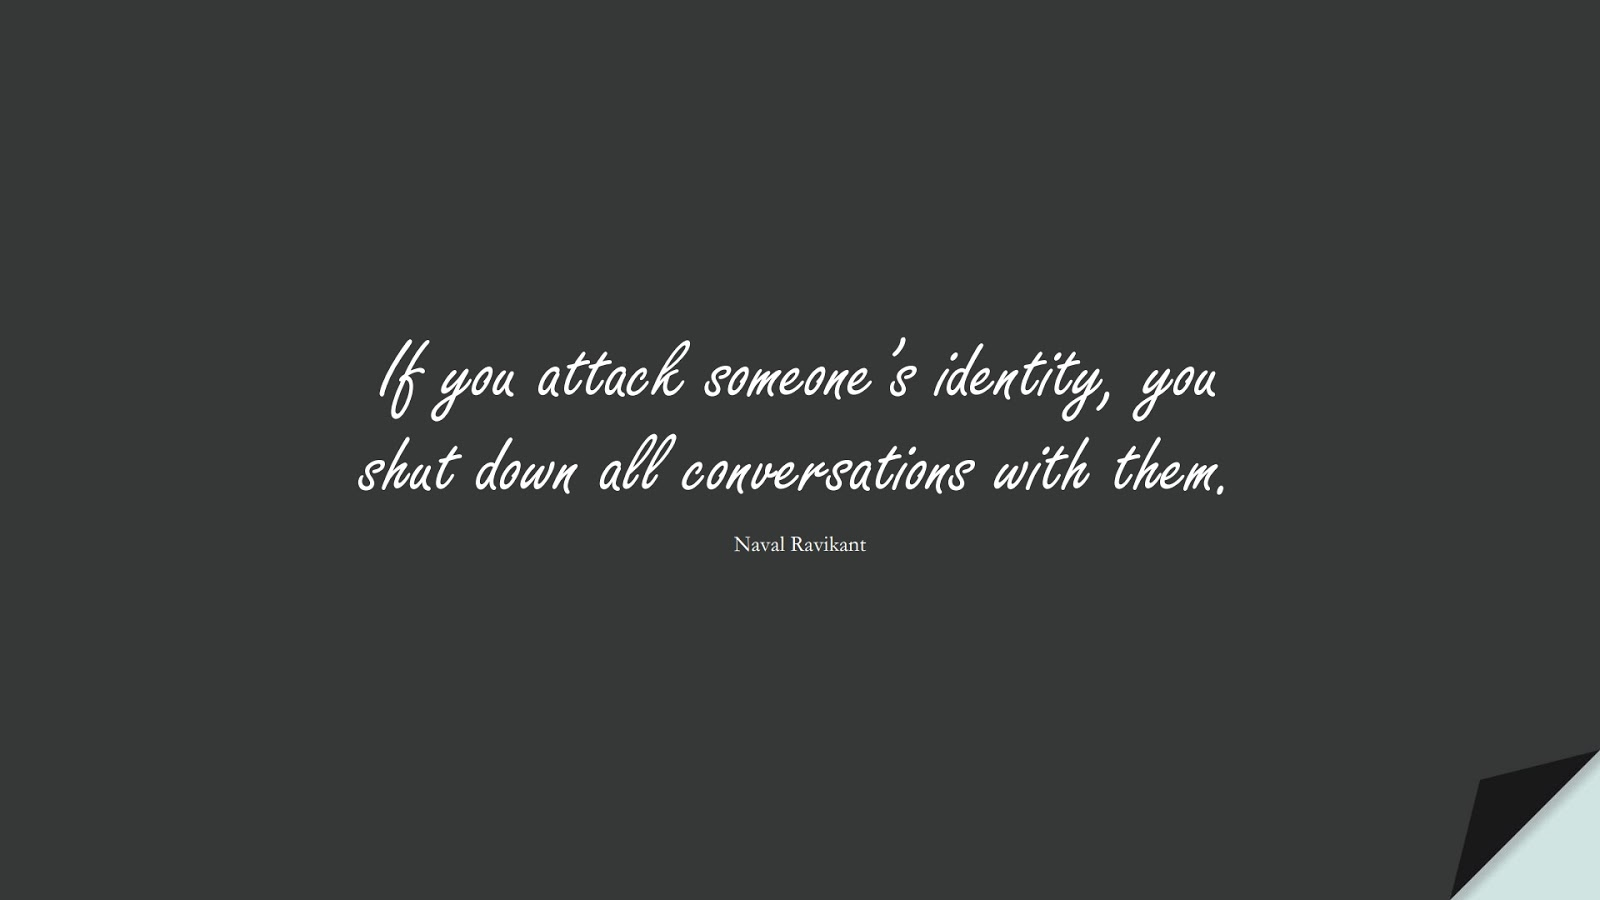 If you attack someone's identity, you shut down all conversations with them. (Naval Ravikant);  #RelationshipQuotes